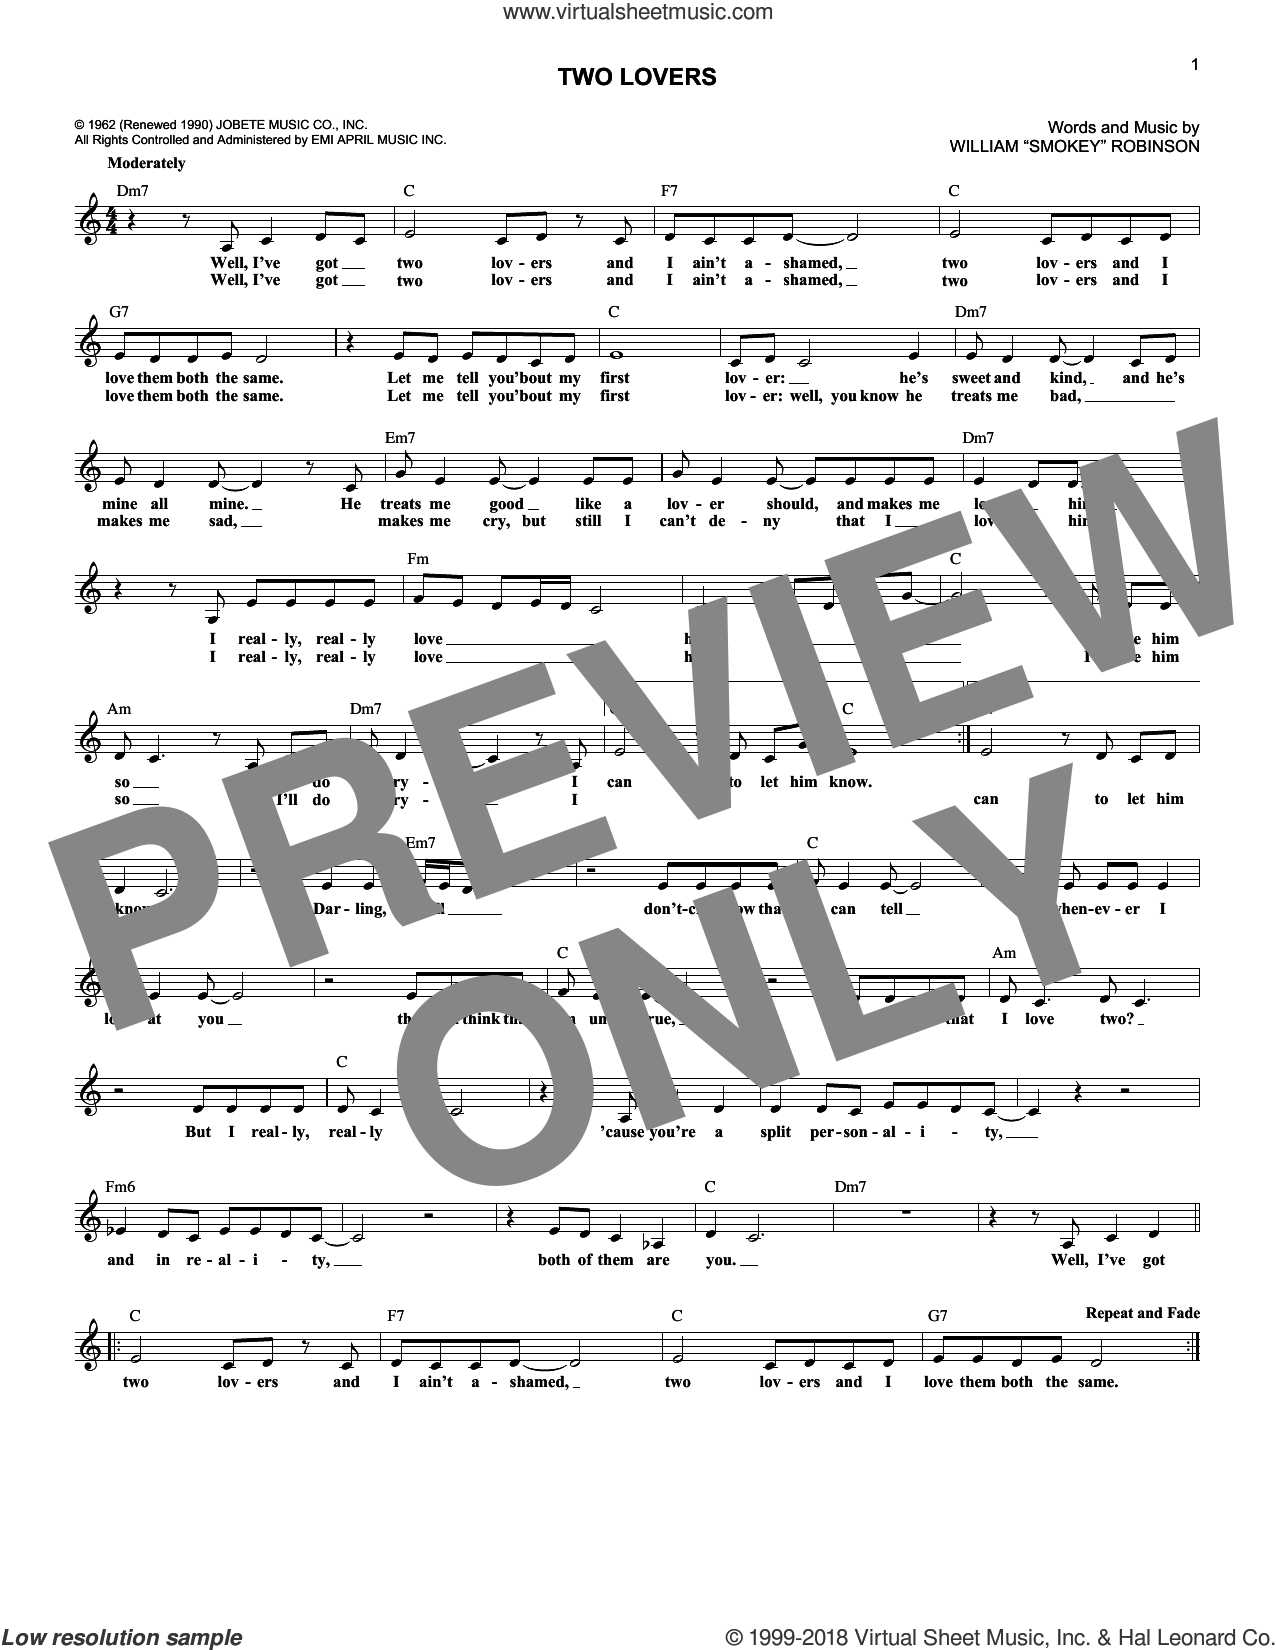 Two Lovers sheet music for voice and other instruments (fake book) by William 'Smokey' Robinson. Score Image Preview.